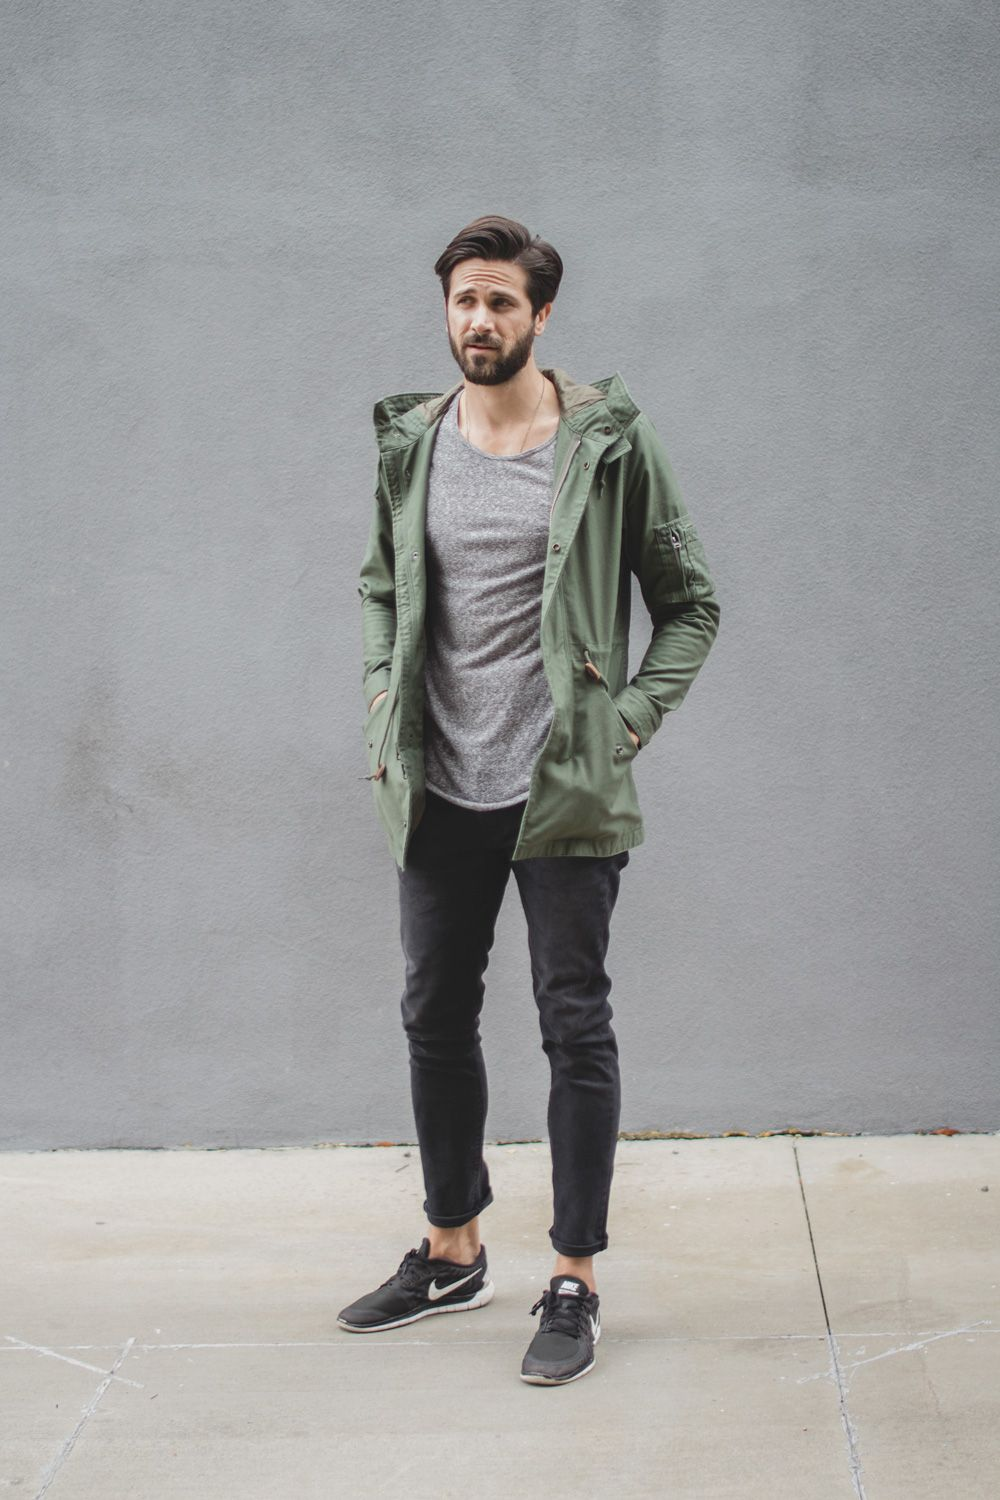 Gray Jeans outfit: 6 Easy, Stylish